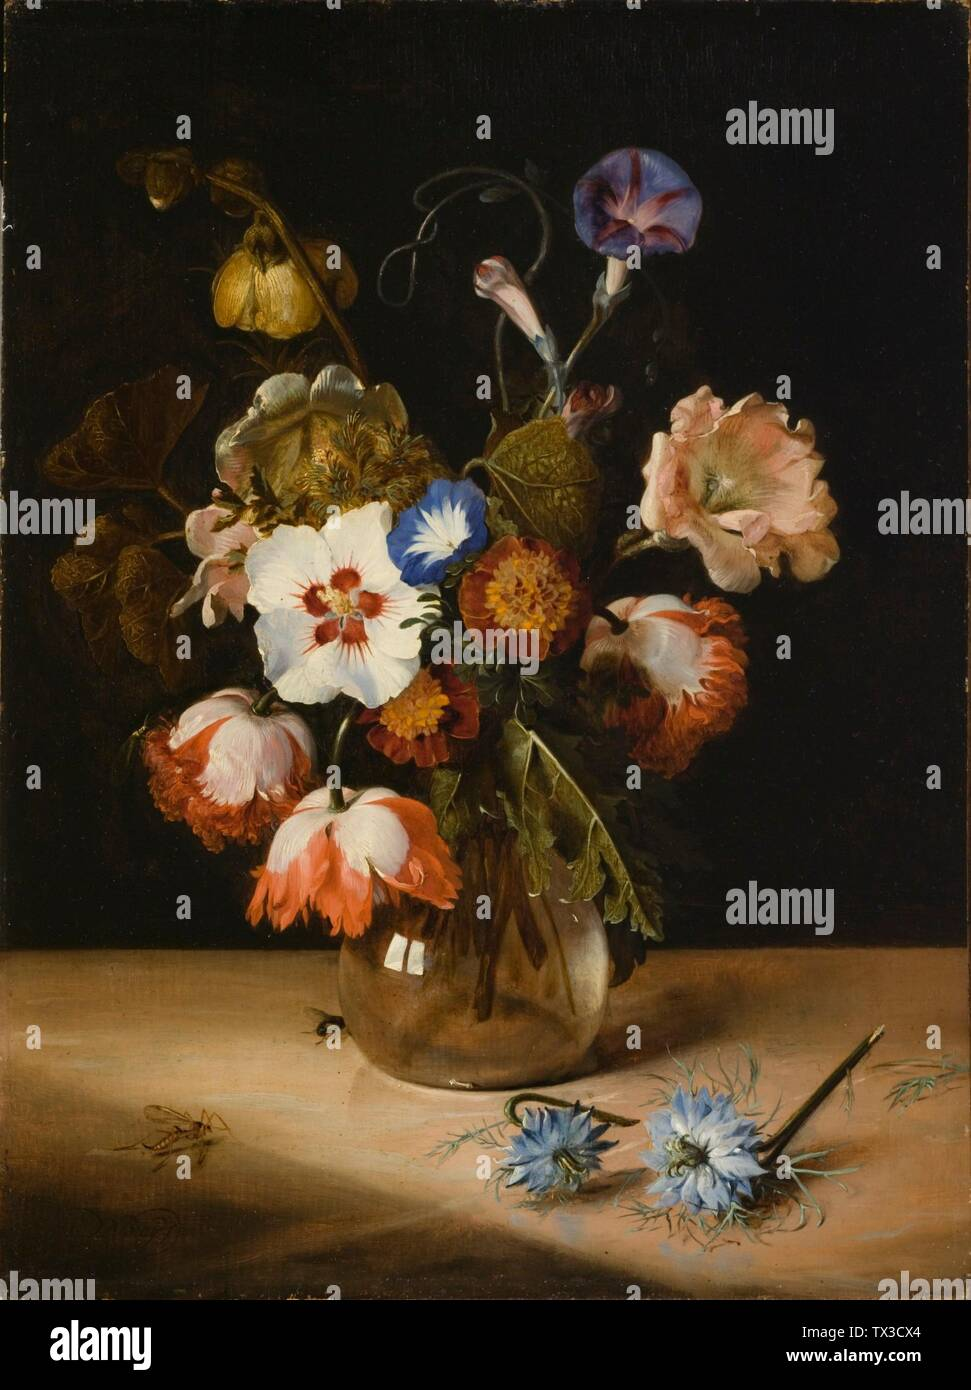 Flowers in a Glass Vase;  1671 Paintings Oil on wood Canvas:  19 x 14 in. (48.26 x 35.63 cm); Framed:  25 x 20 1/2 x 2 in. (63.5 x 52.07 x 5.08 cm) Gift of Mr. and Mrs. Edward William Carter (M.2009.106.4) European Painting Currently on public view: Ahmanson Building, floor 3; 1671date QS:P571,+1671-00-00T00:00:00Z/9; Stock Photo